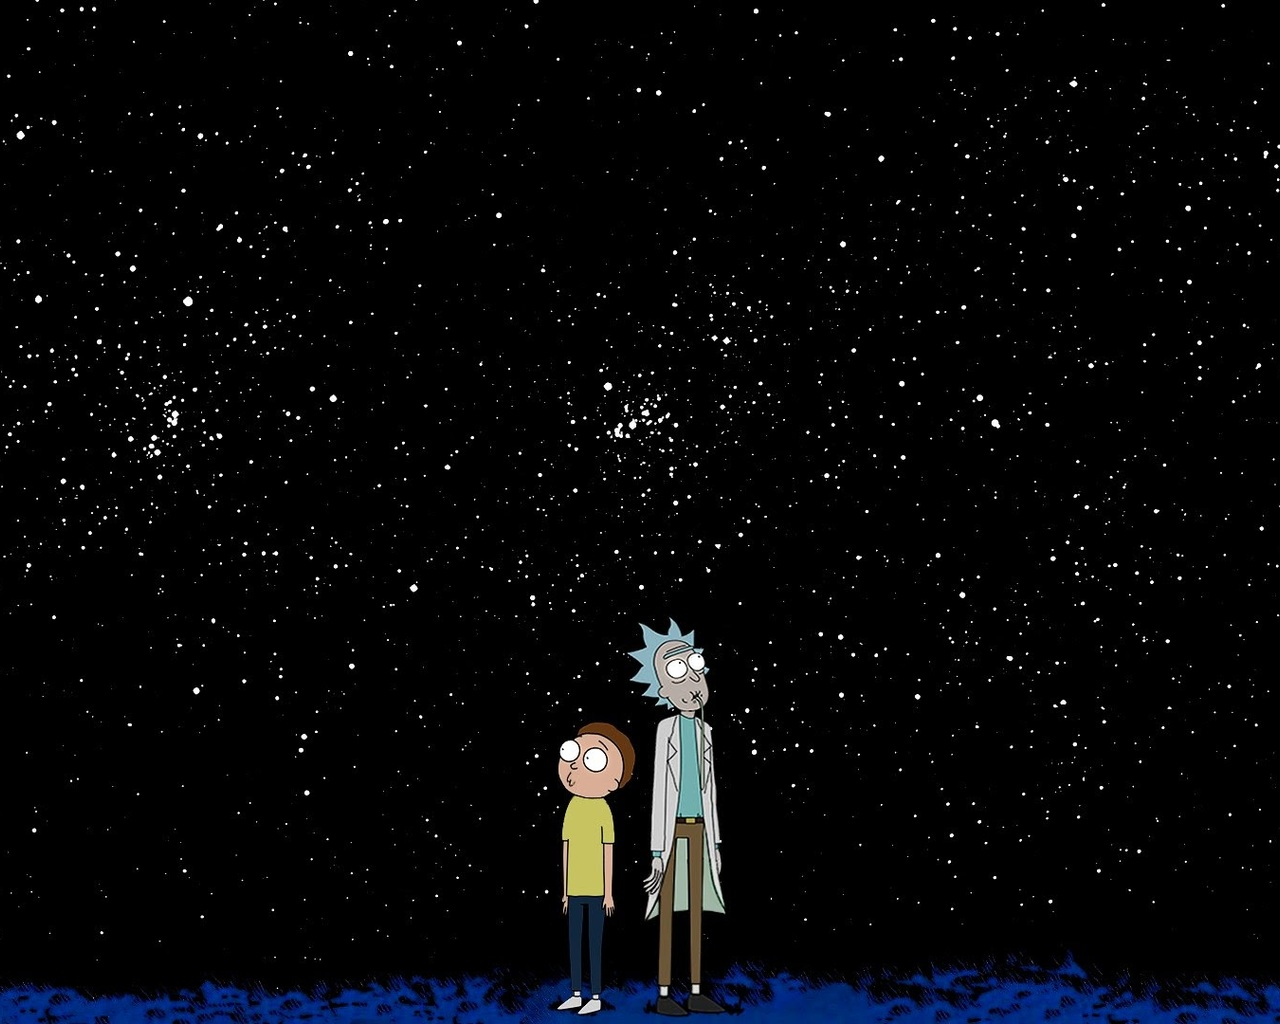 1280x1024 rick and morty hd 1280x1024 resolution hd 4k wallpapers